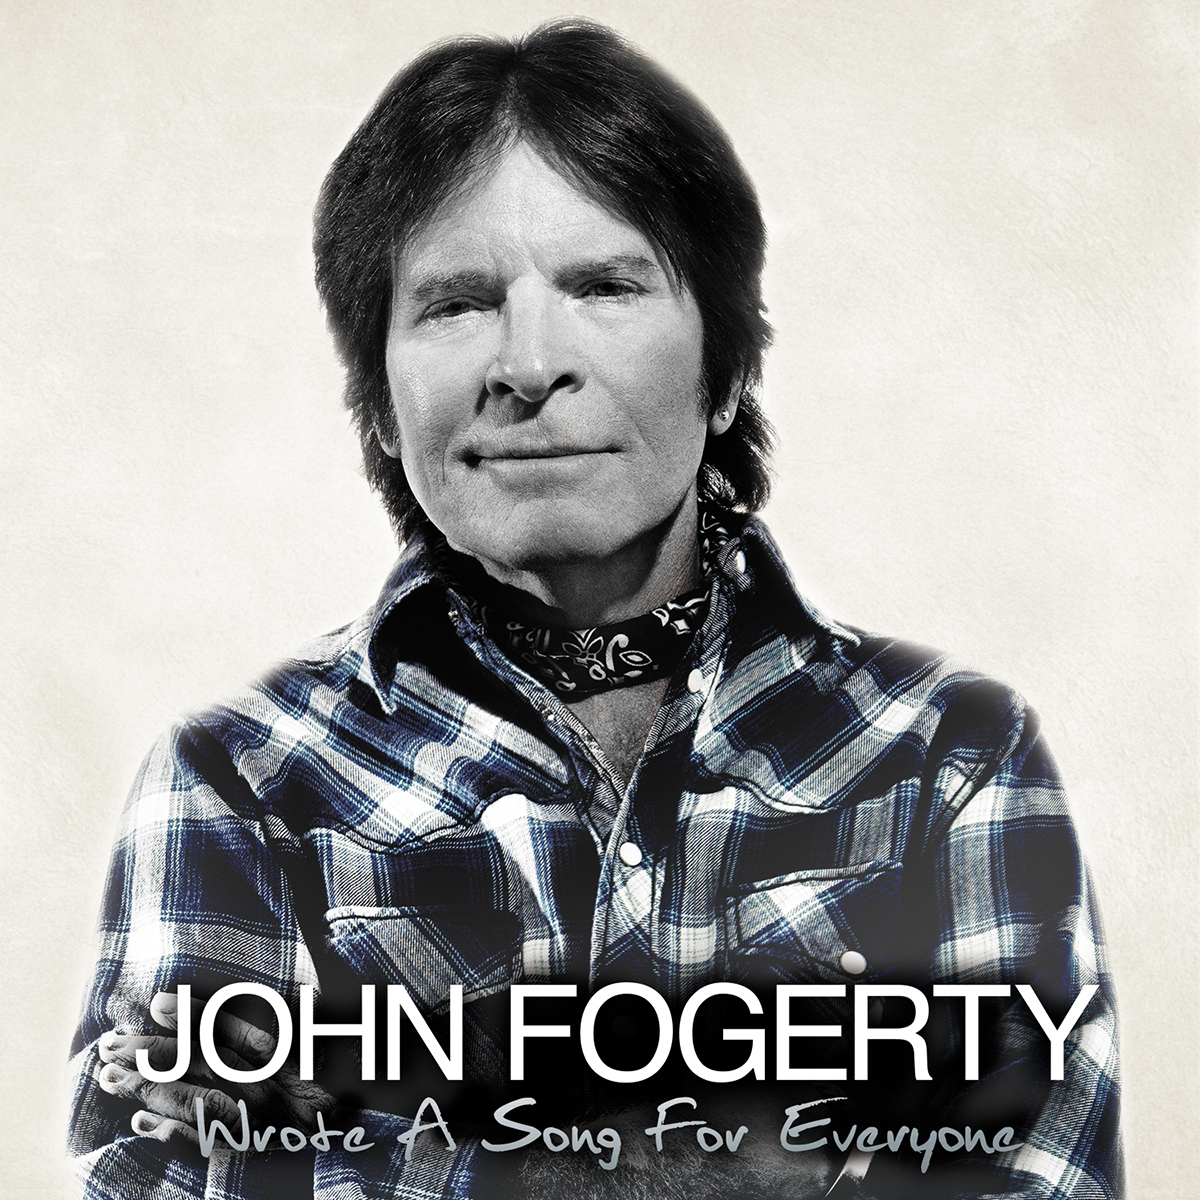 John Fogerty - Wrote A Song For Everyone CD